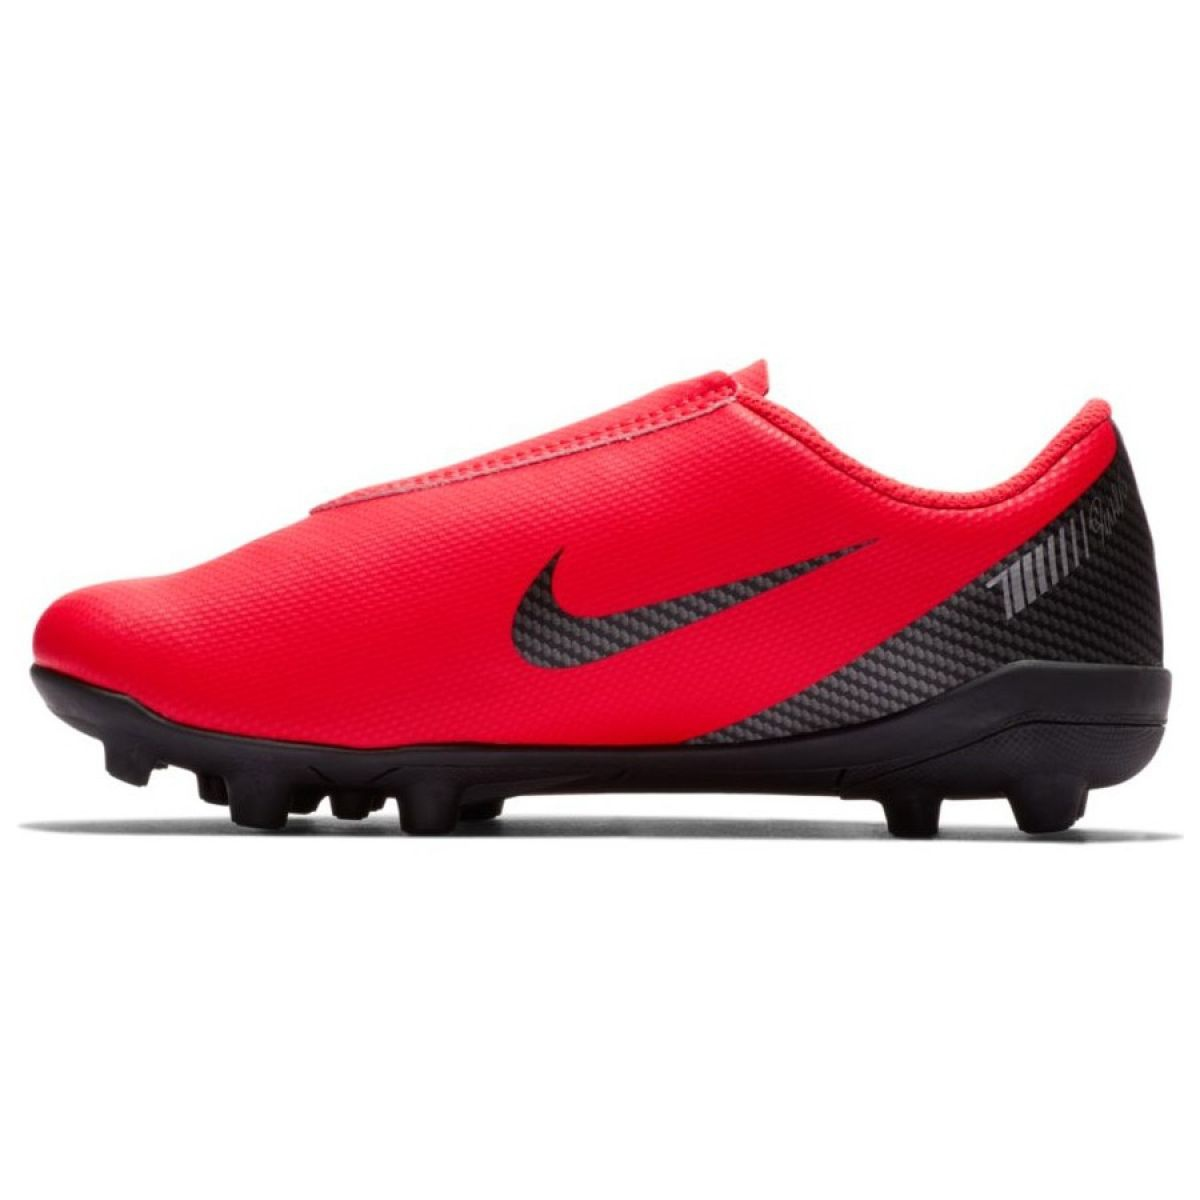 12 Club Vapor Nike Jr Mg Mercurial 600 Zapatillas Aj3096 V Ps Cr7 FKTlJ31c